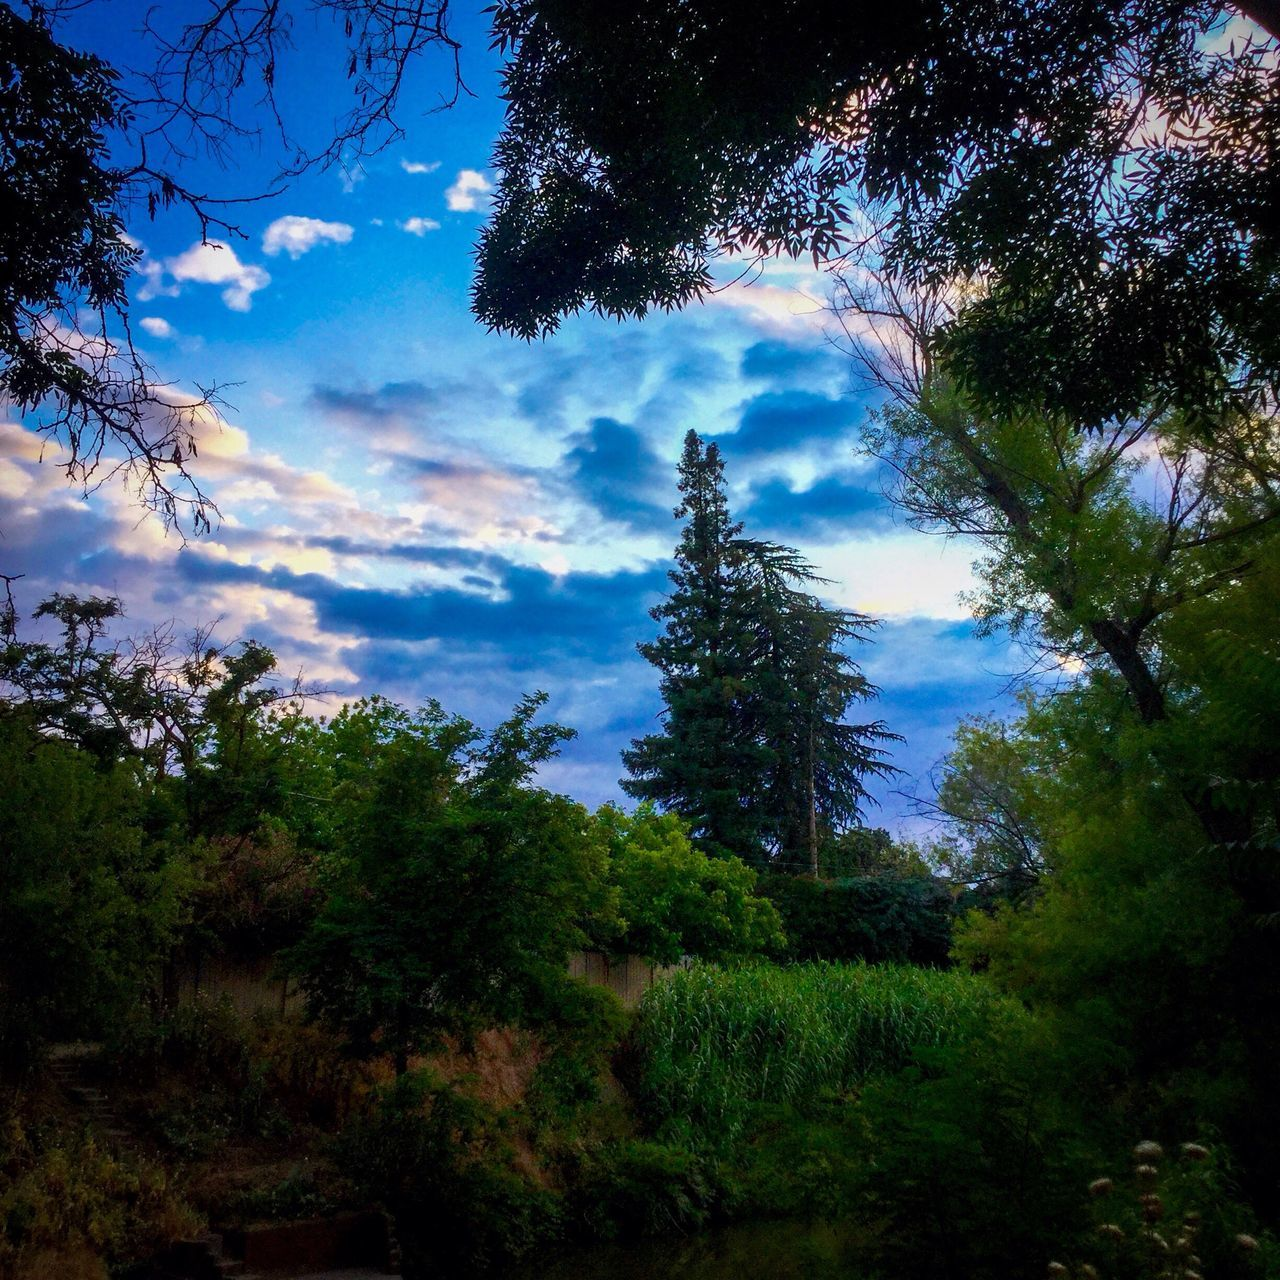 tree, nature, growth, sky, beauty in nature, cloud - sky, tranquility, tranquil scene, no people, scenics, forest, low angle view, outdoors, day, branch